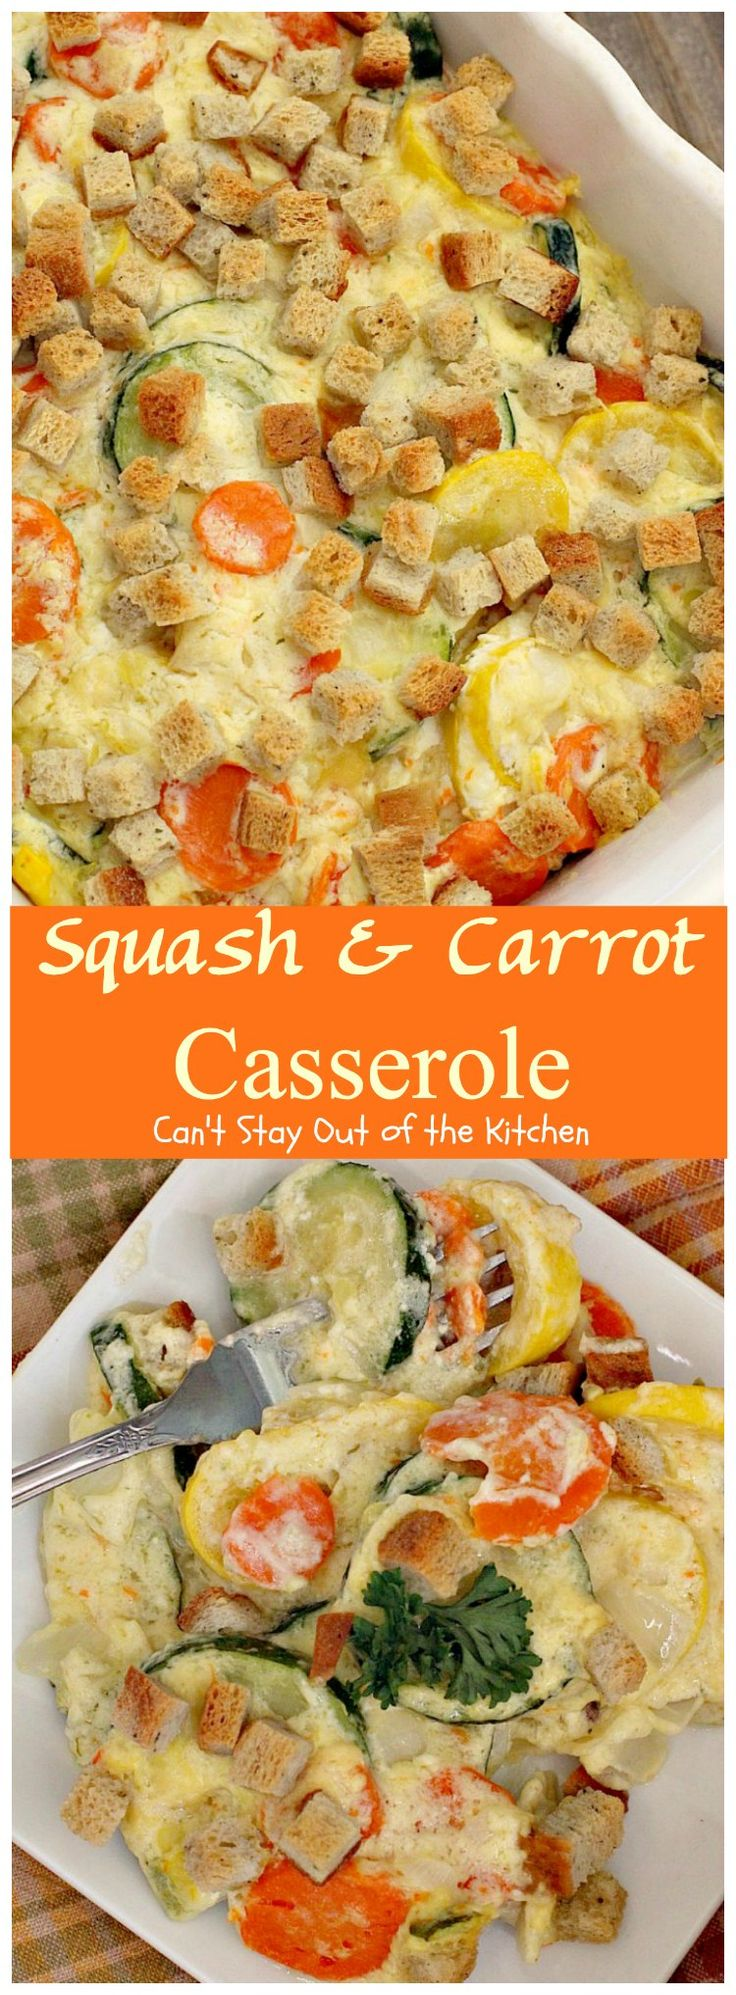 Squash and Carrot Casserole | Can't Stay Out of the Kitchen | this fantastic #squash #casserole is great for the #holidays & always a family favorite. So easy to assemble, too. #carrots #PepperidgeFarmstuffing